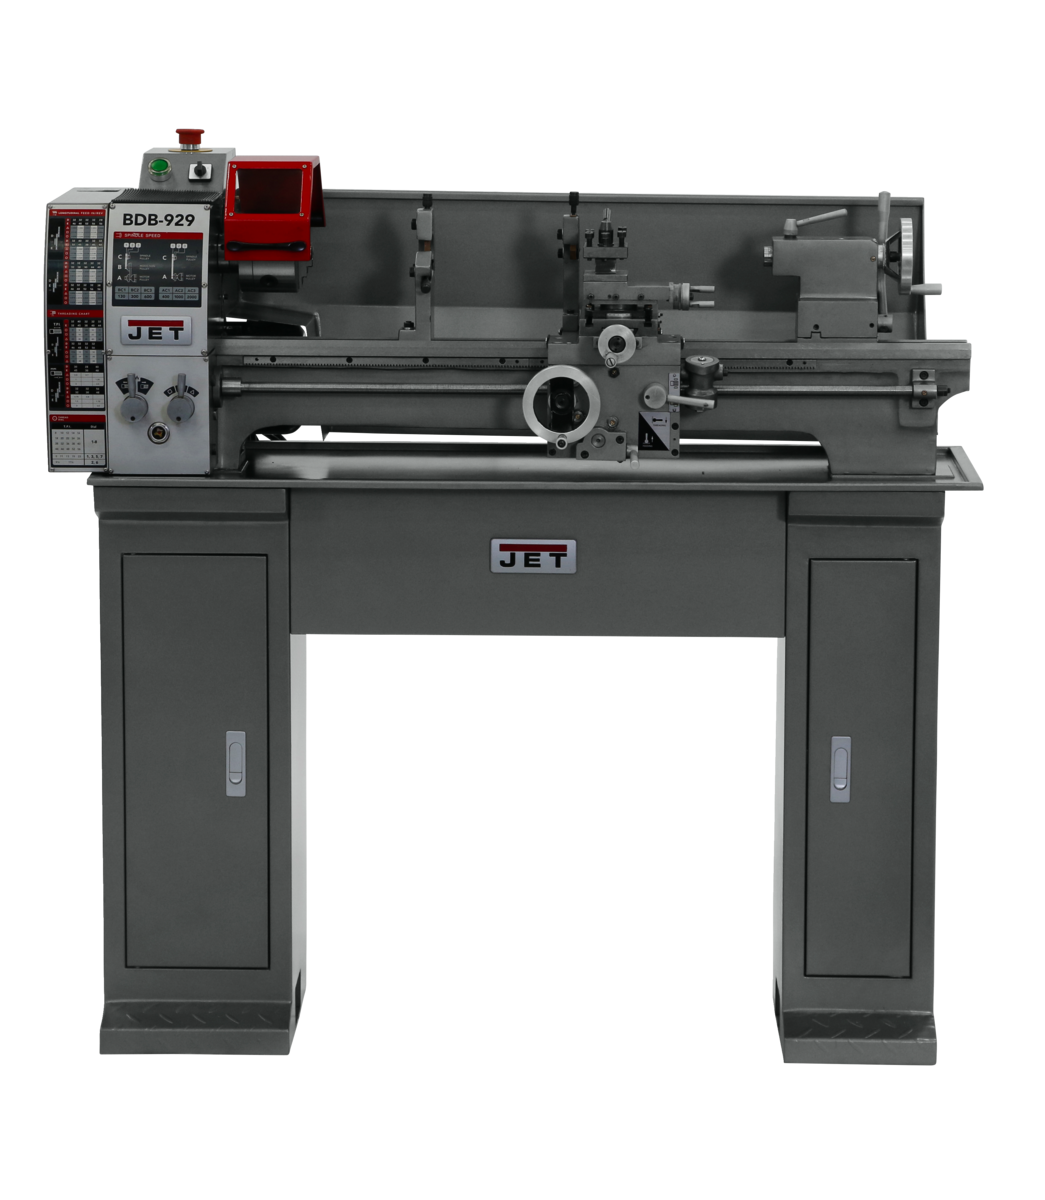 BDB-929 Belt Drive Bench lathe with stand